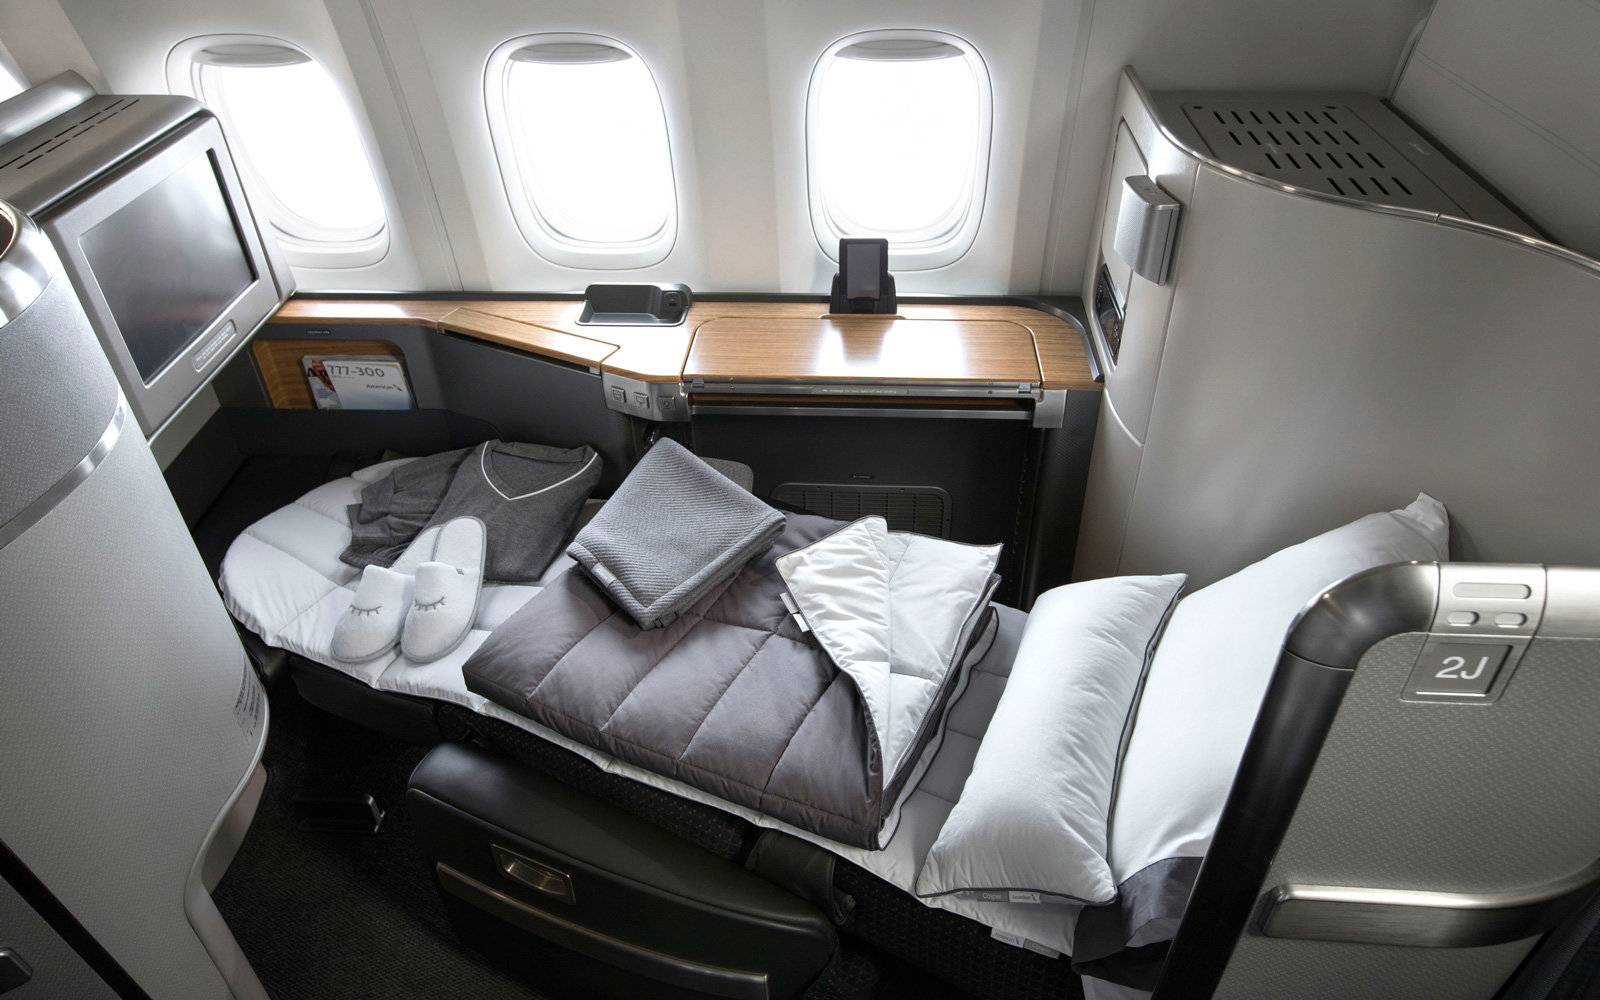 The full suite of products by Casper for American Airlines.